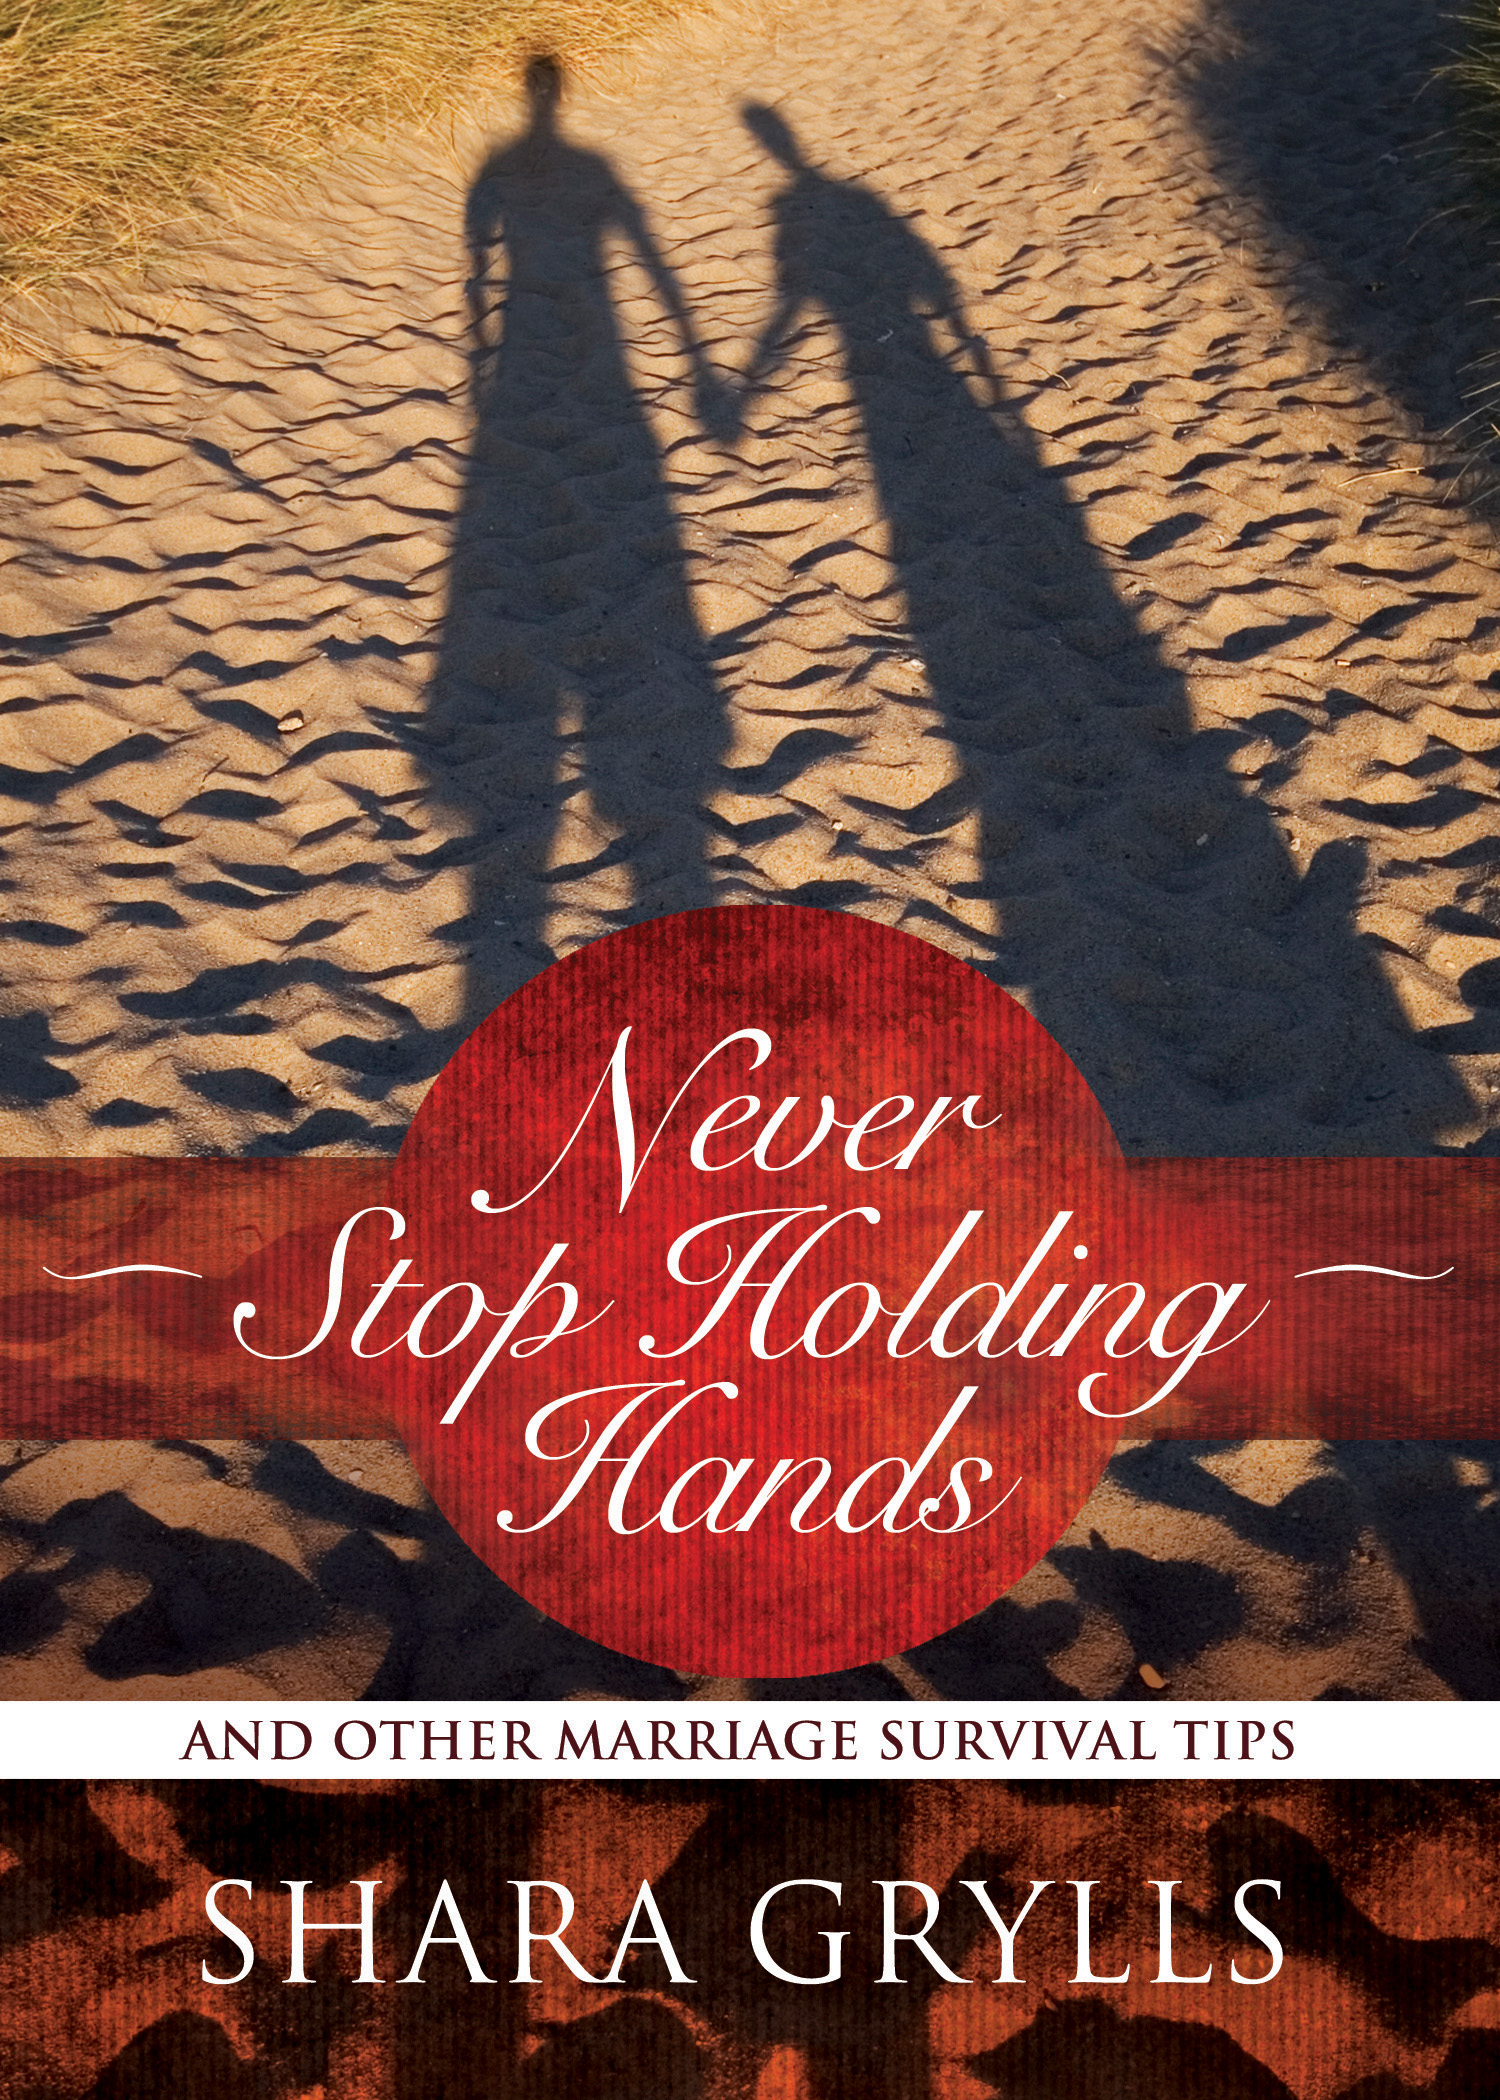 Never Stop Holding Hands: And Other Marriage Survival Tips By: Shara Grylls